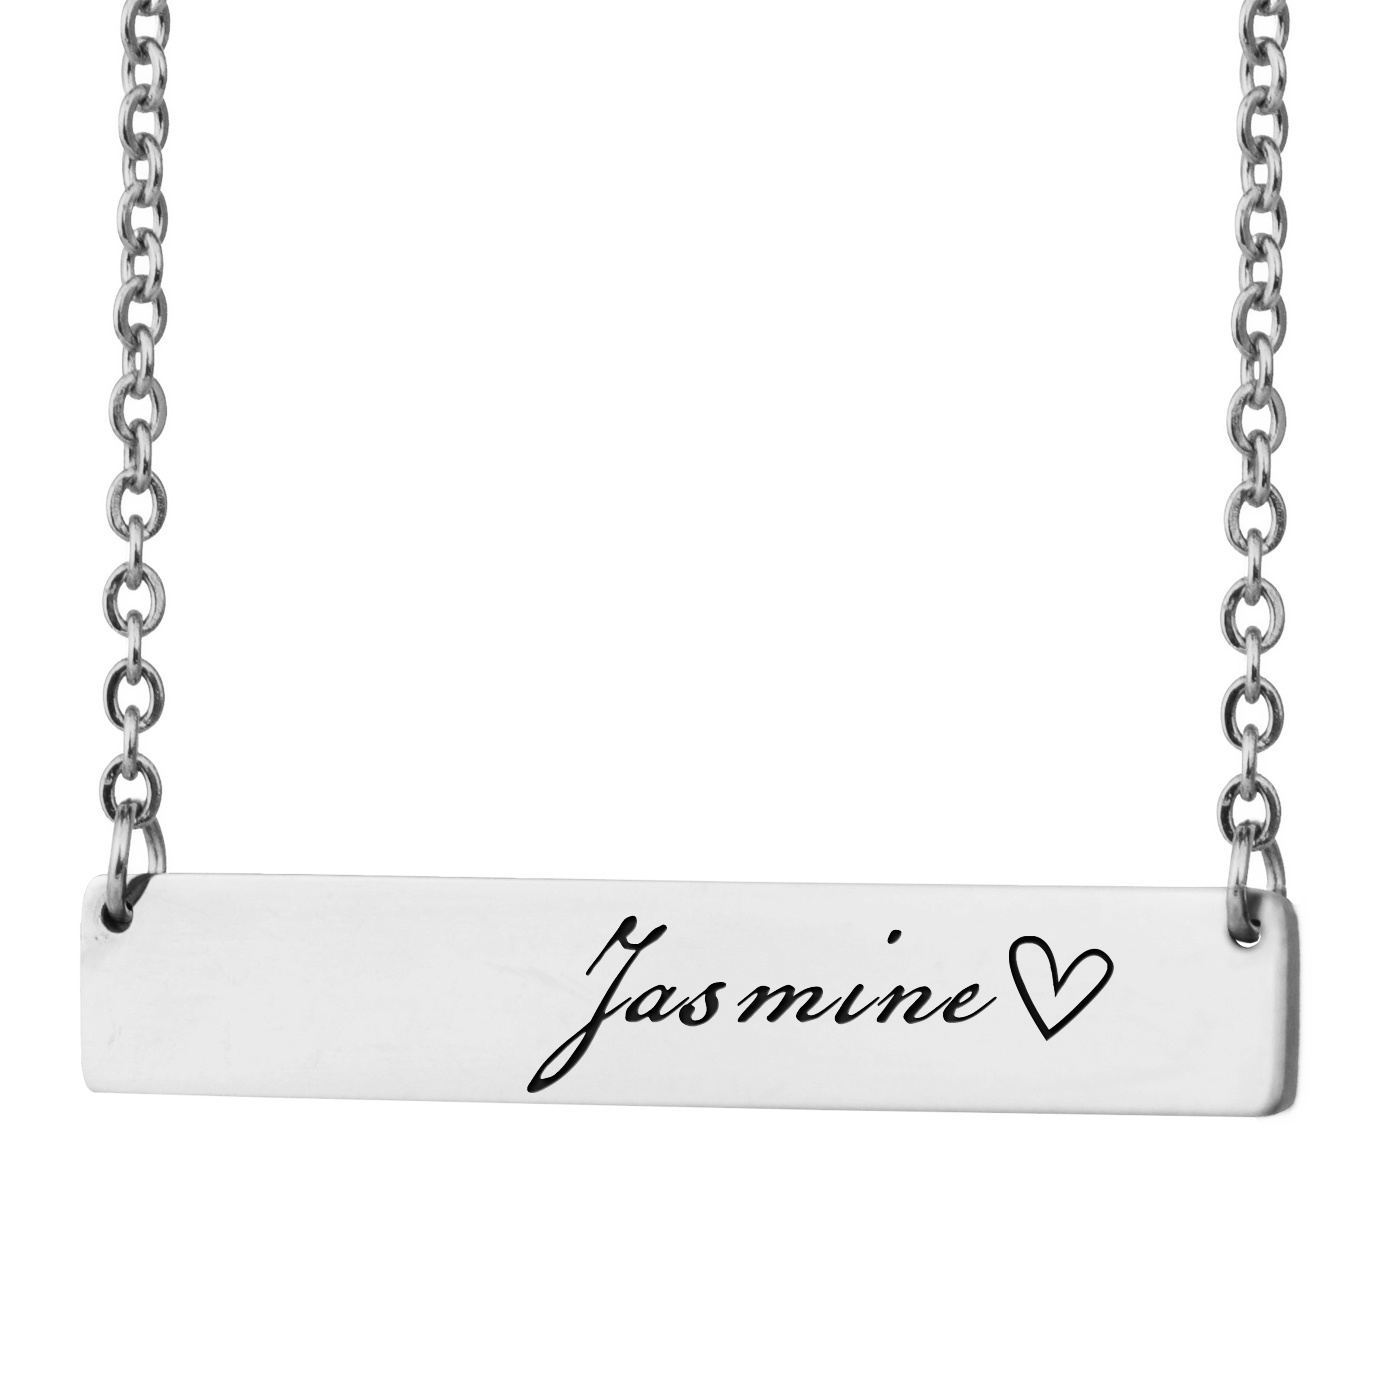 Nameplate Bar Necklace Engrave Custom Coordinates Necklace For Women Stainless Steel Personalized Name Words Five Letter Words With Steeld